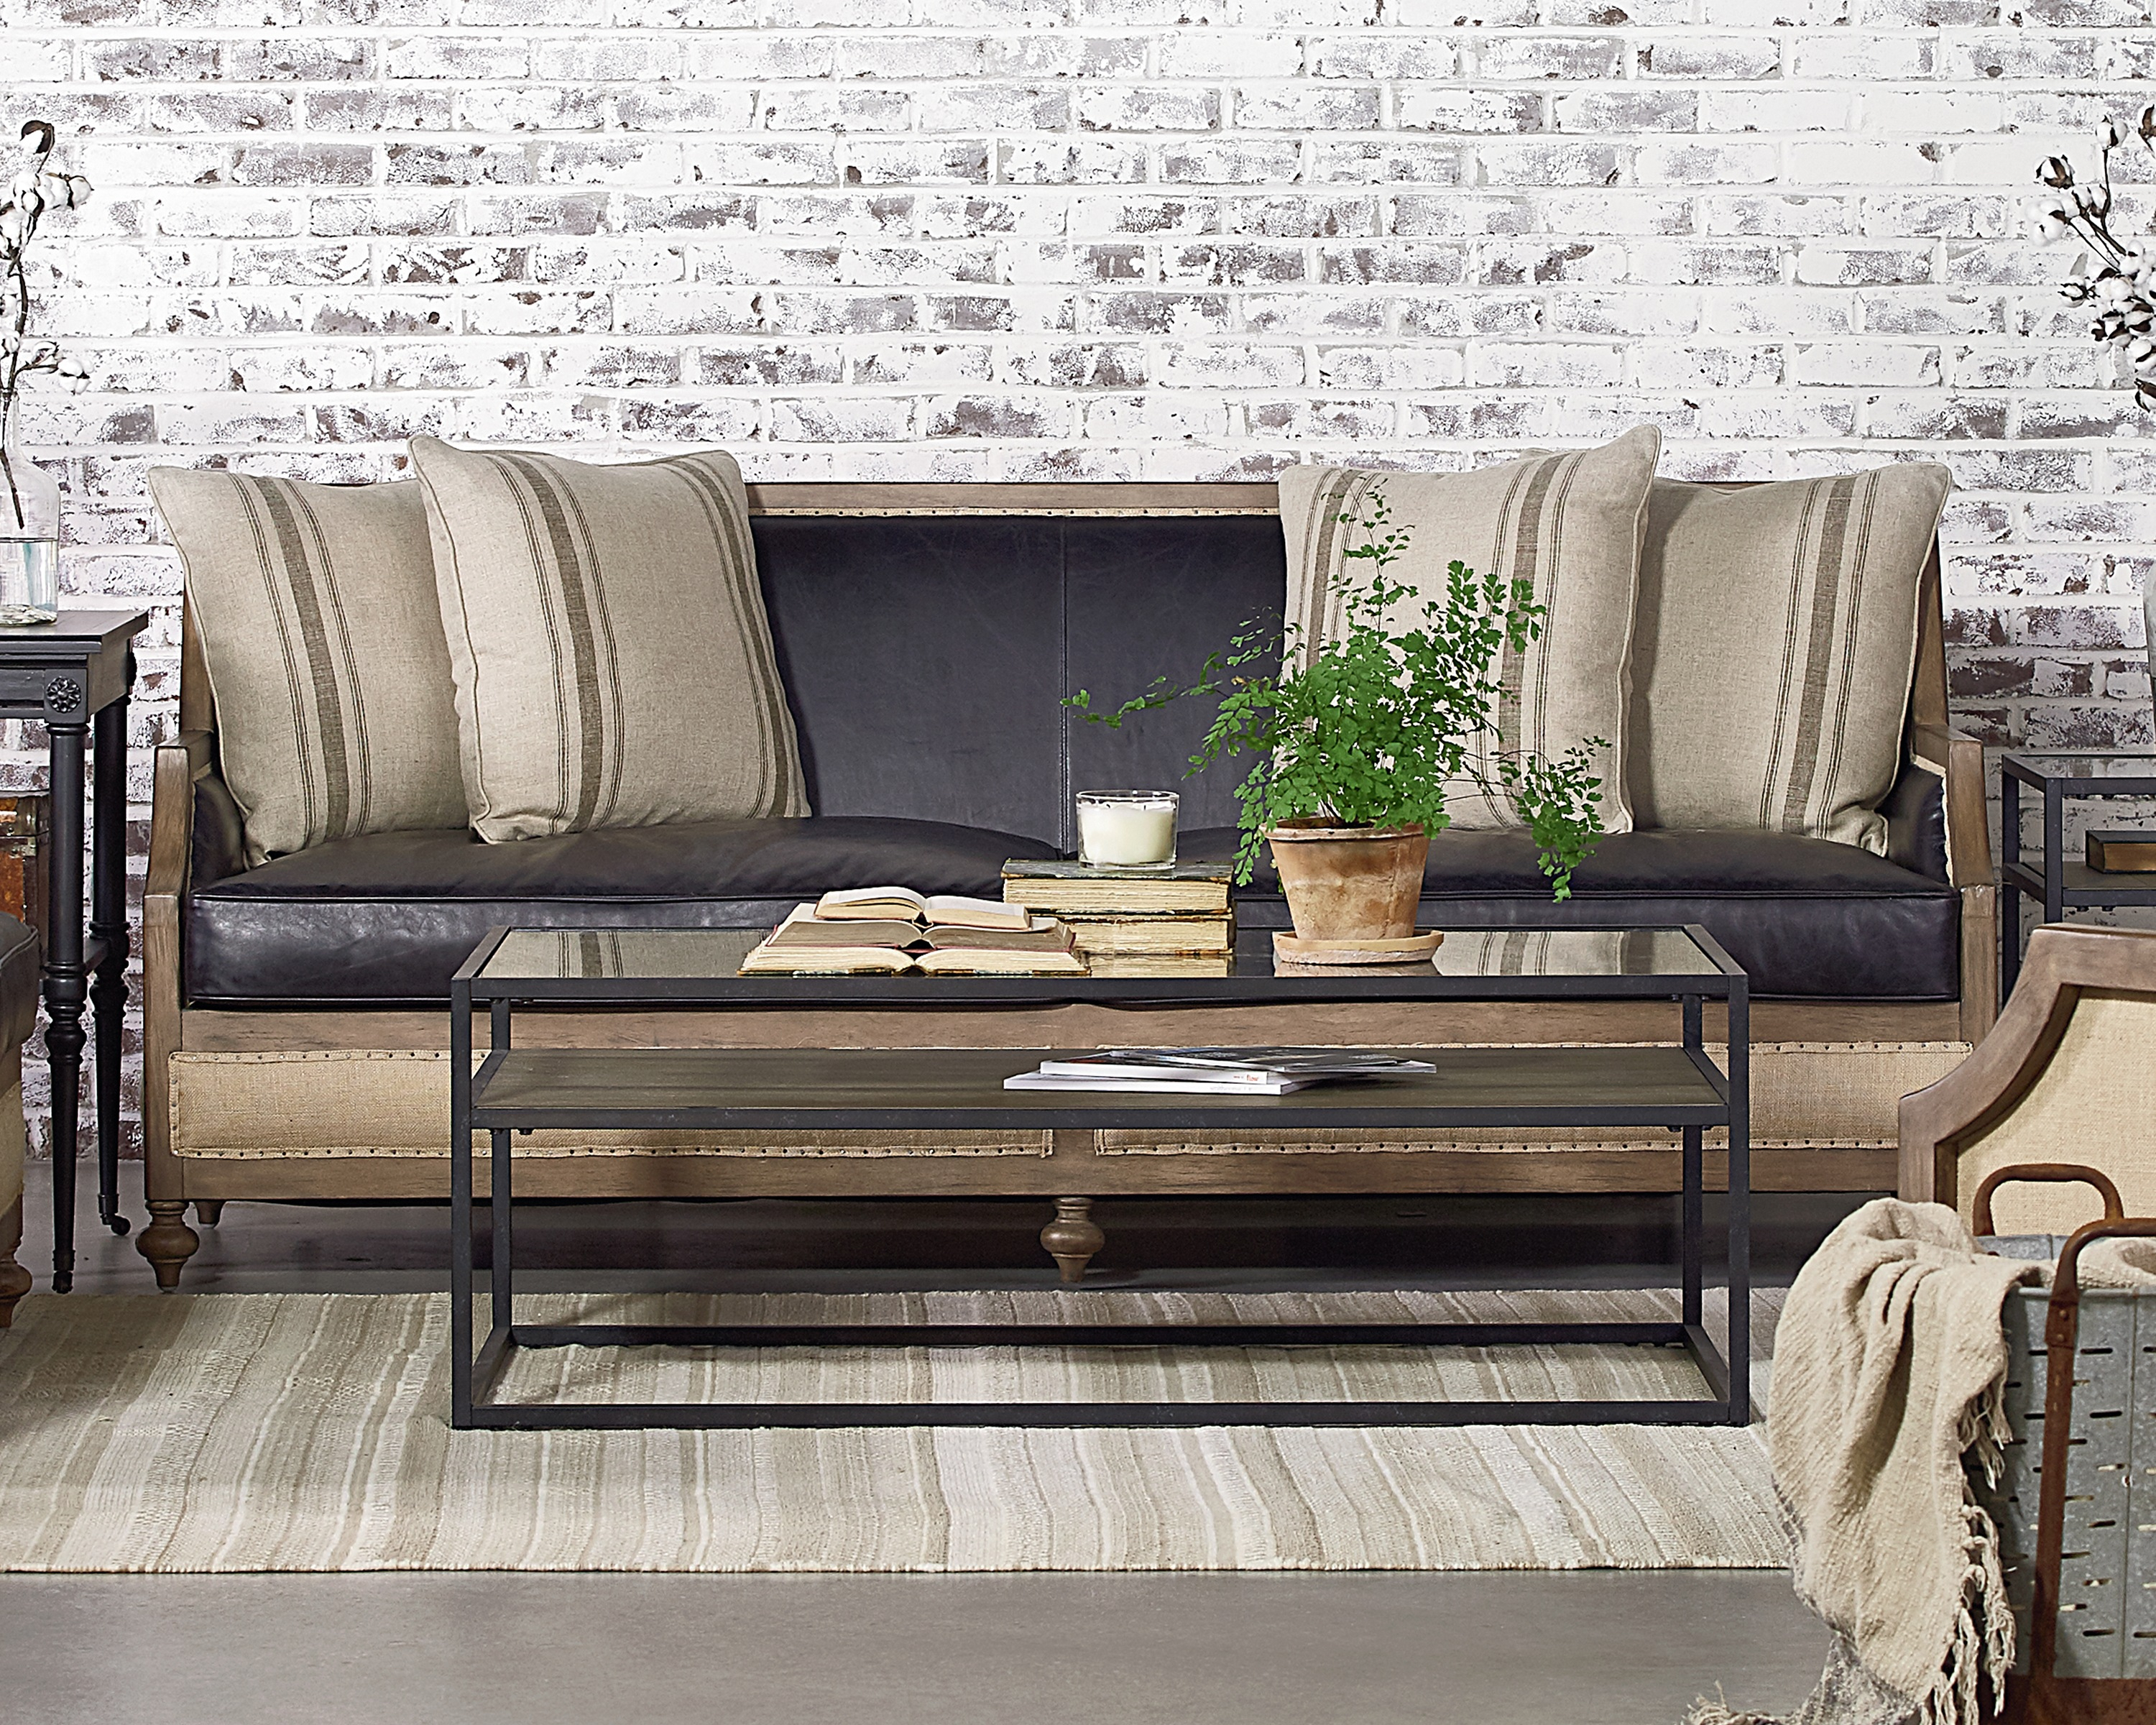 Foundation Sofa – Magnolia Home Throughout Magnolia Home Foundation Leather Sofa Chairs (Image 11 of 25)